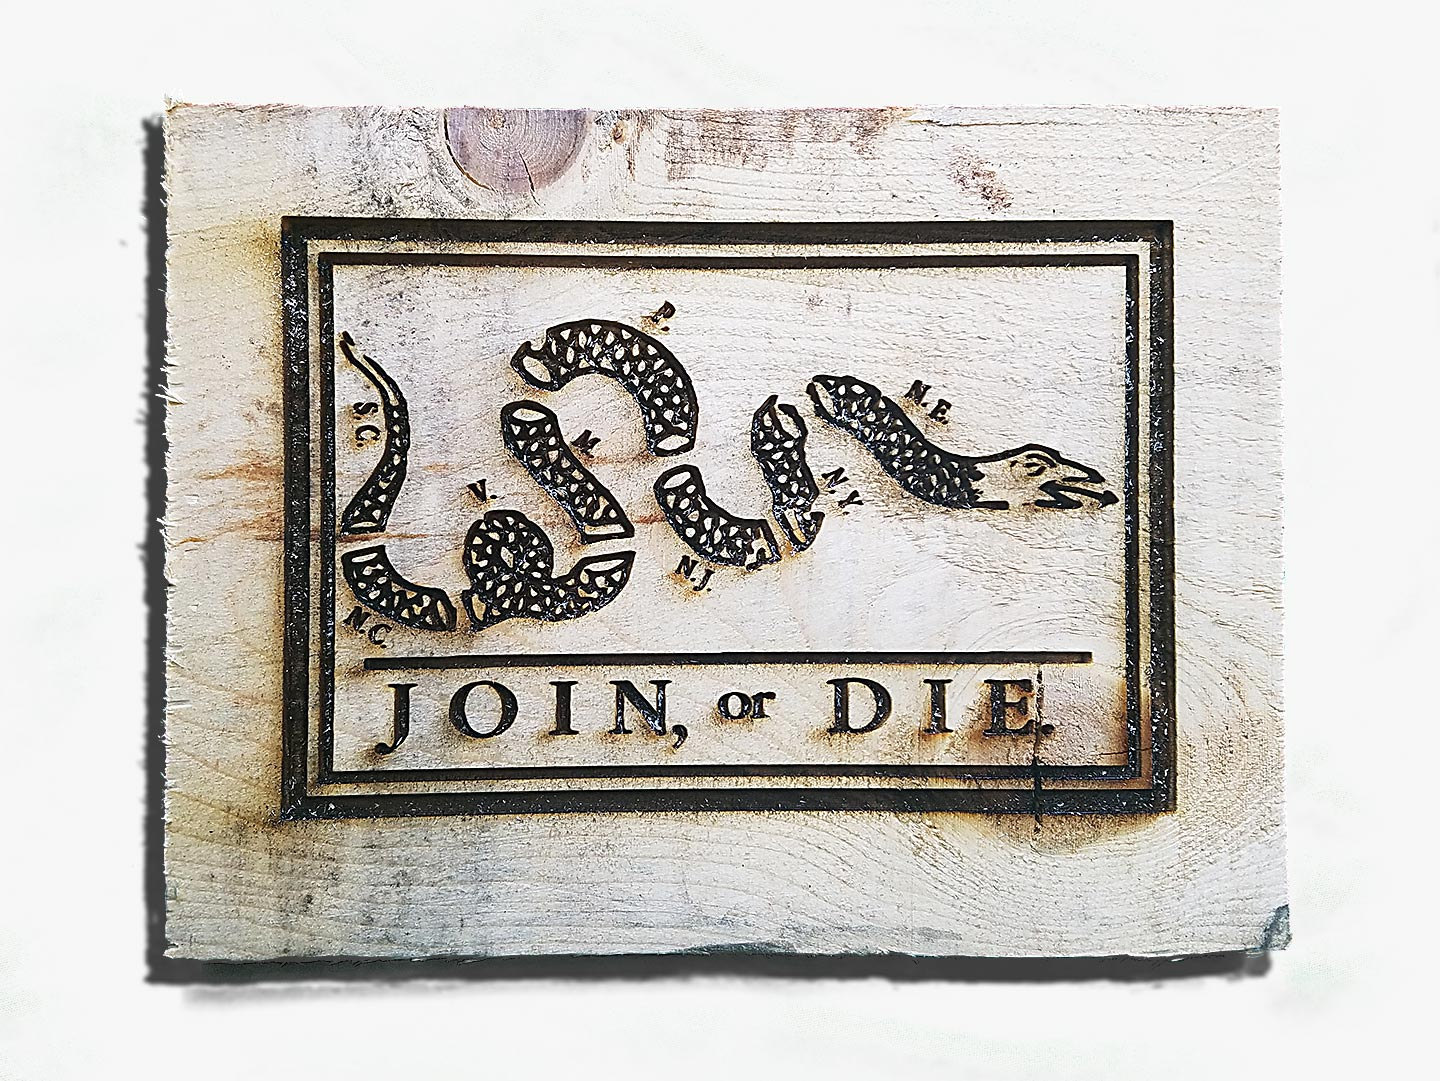 Join or Die Flag Engraving Weathered Wood One of a kind ,vintage ...